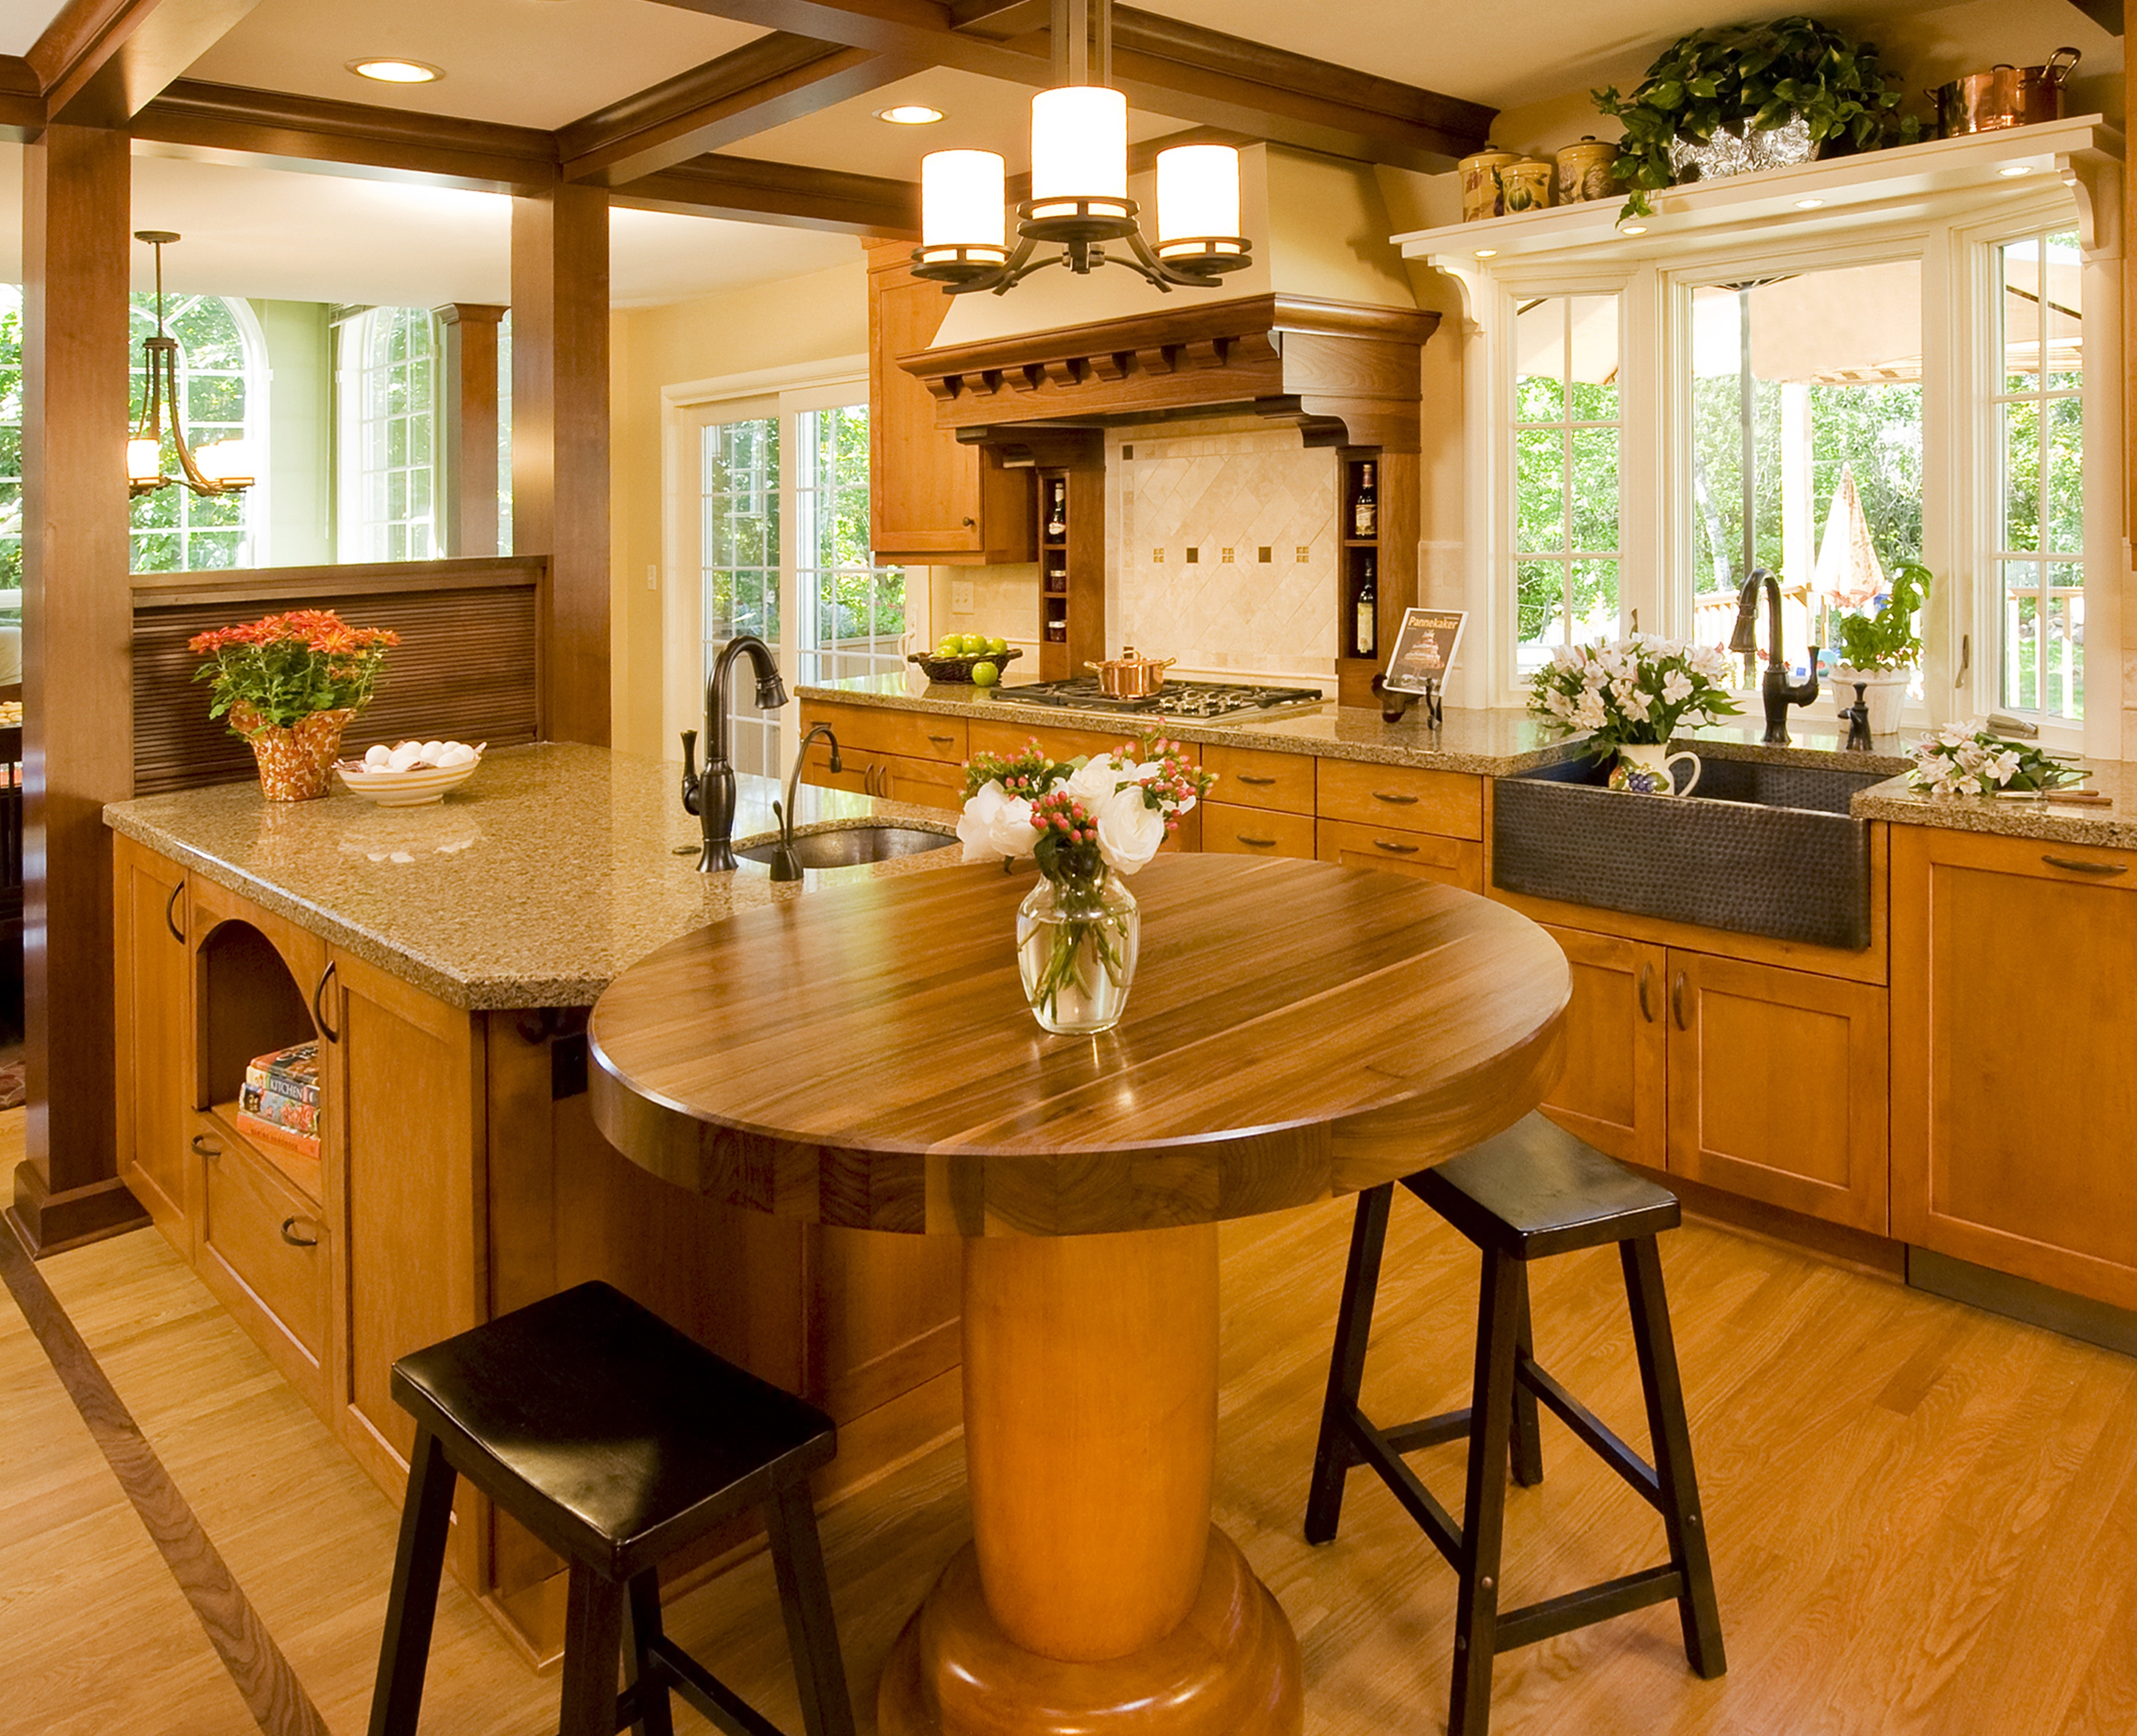 Kitchen Design With Round Island Kitchen Island With Multiple Functions